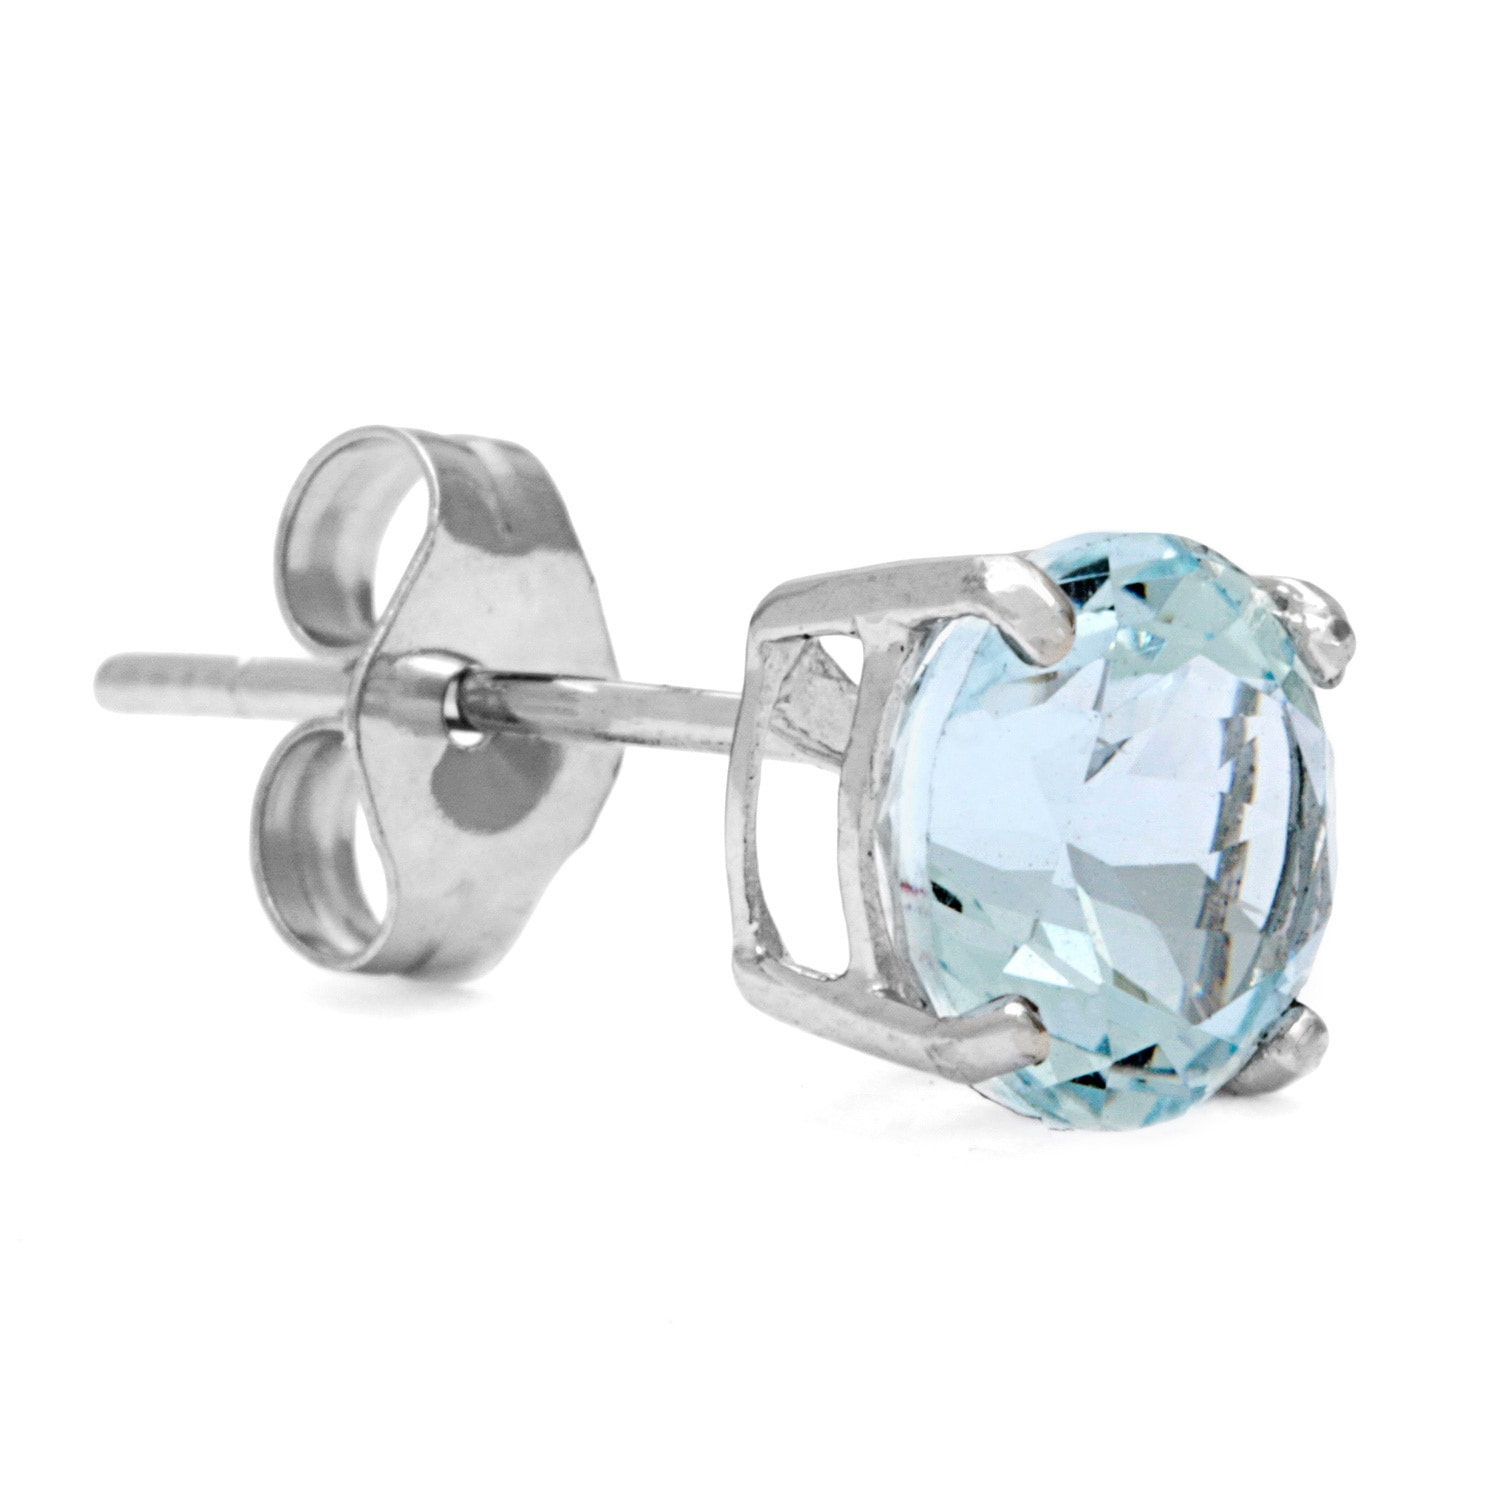 Kabella 14k White Gold Round Aquamarine Earrings On Free Shipping Today 2616588